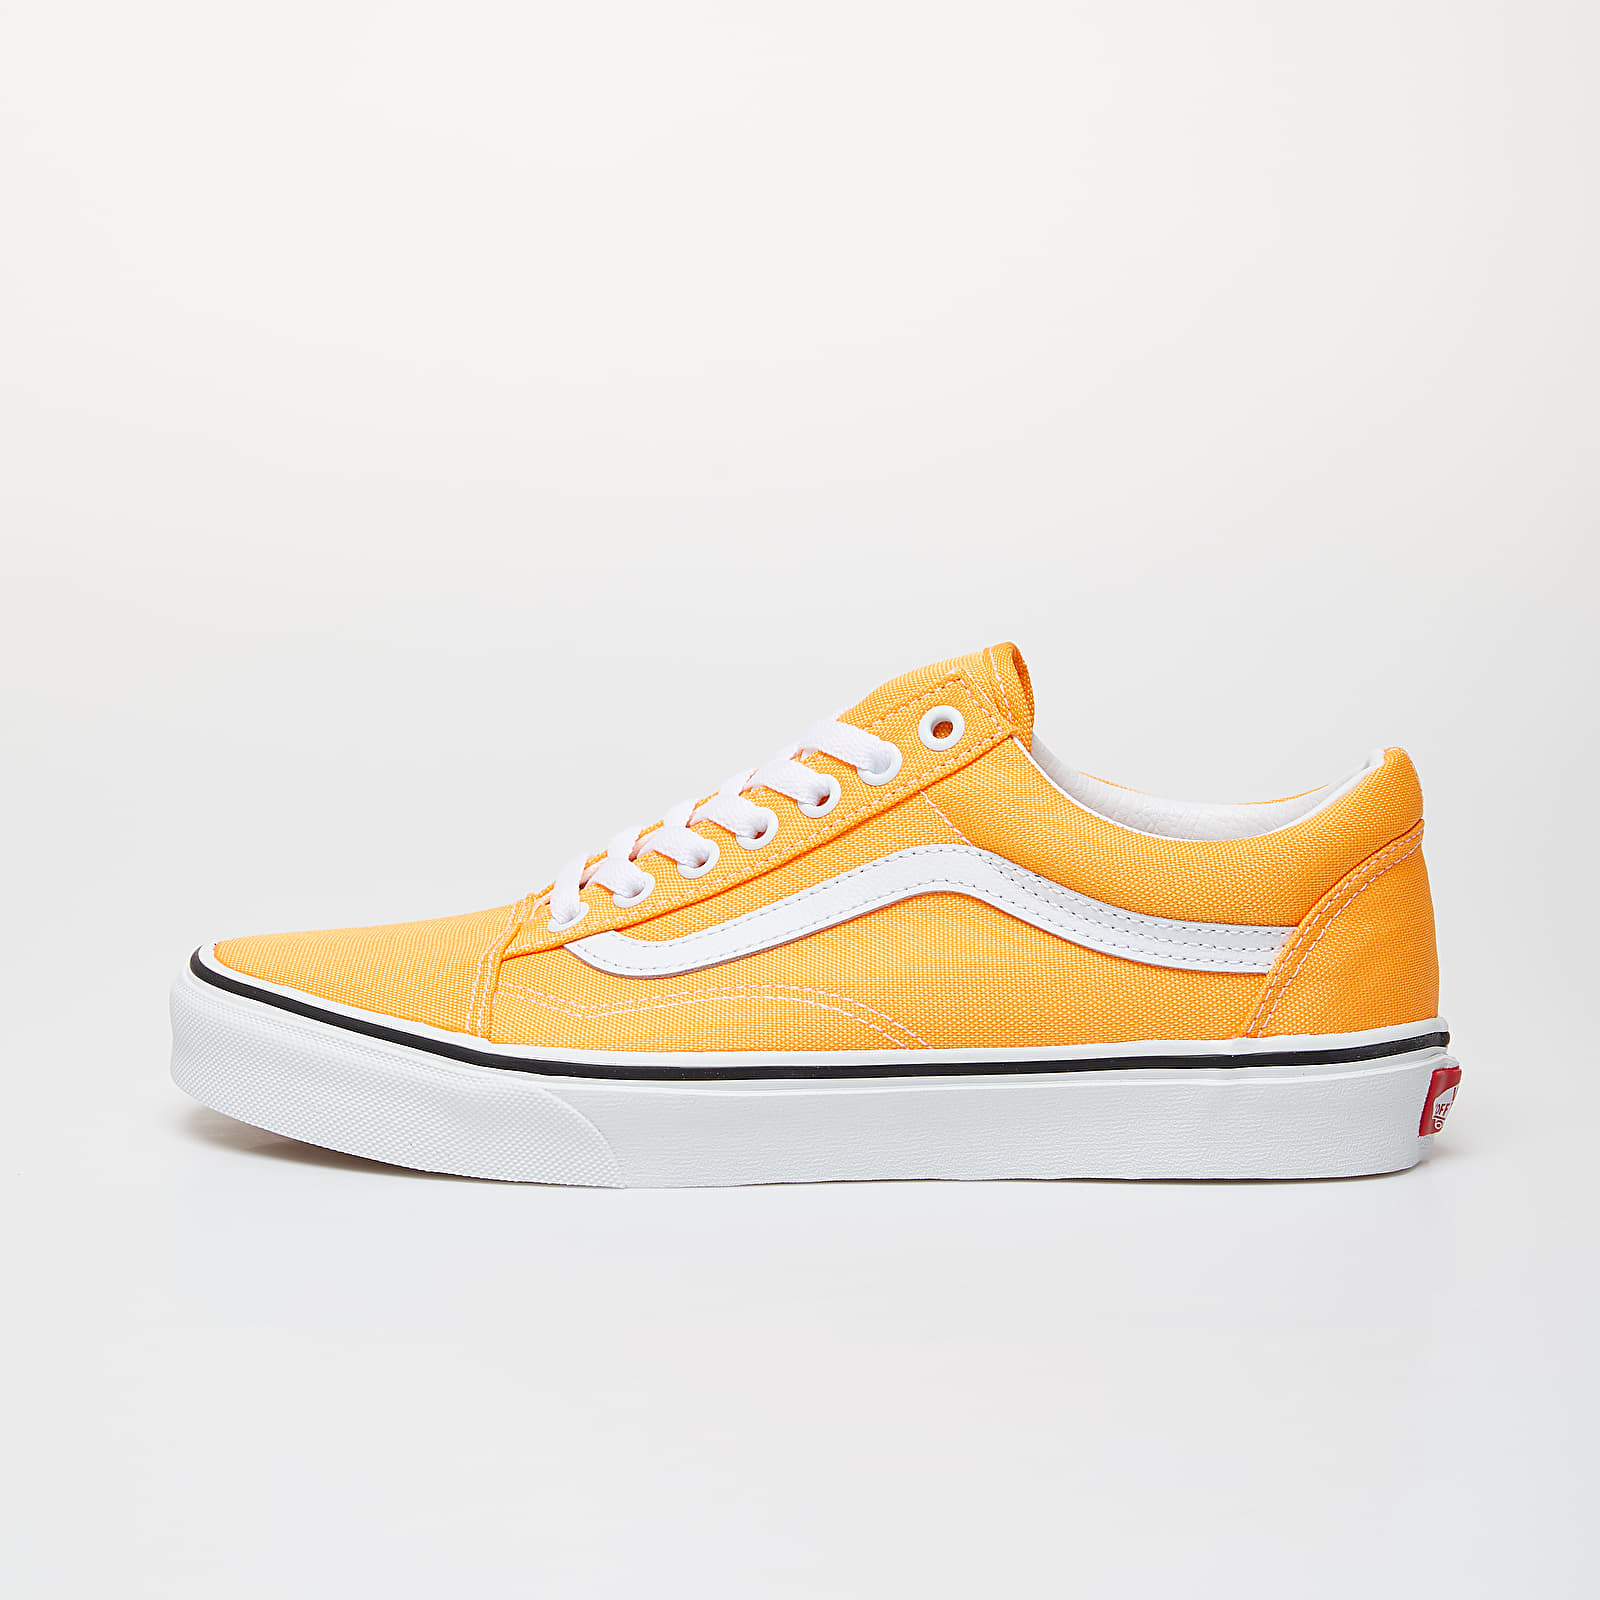 Men's shoes Vans Old Skool (Neon) Blazing Orange/ True White